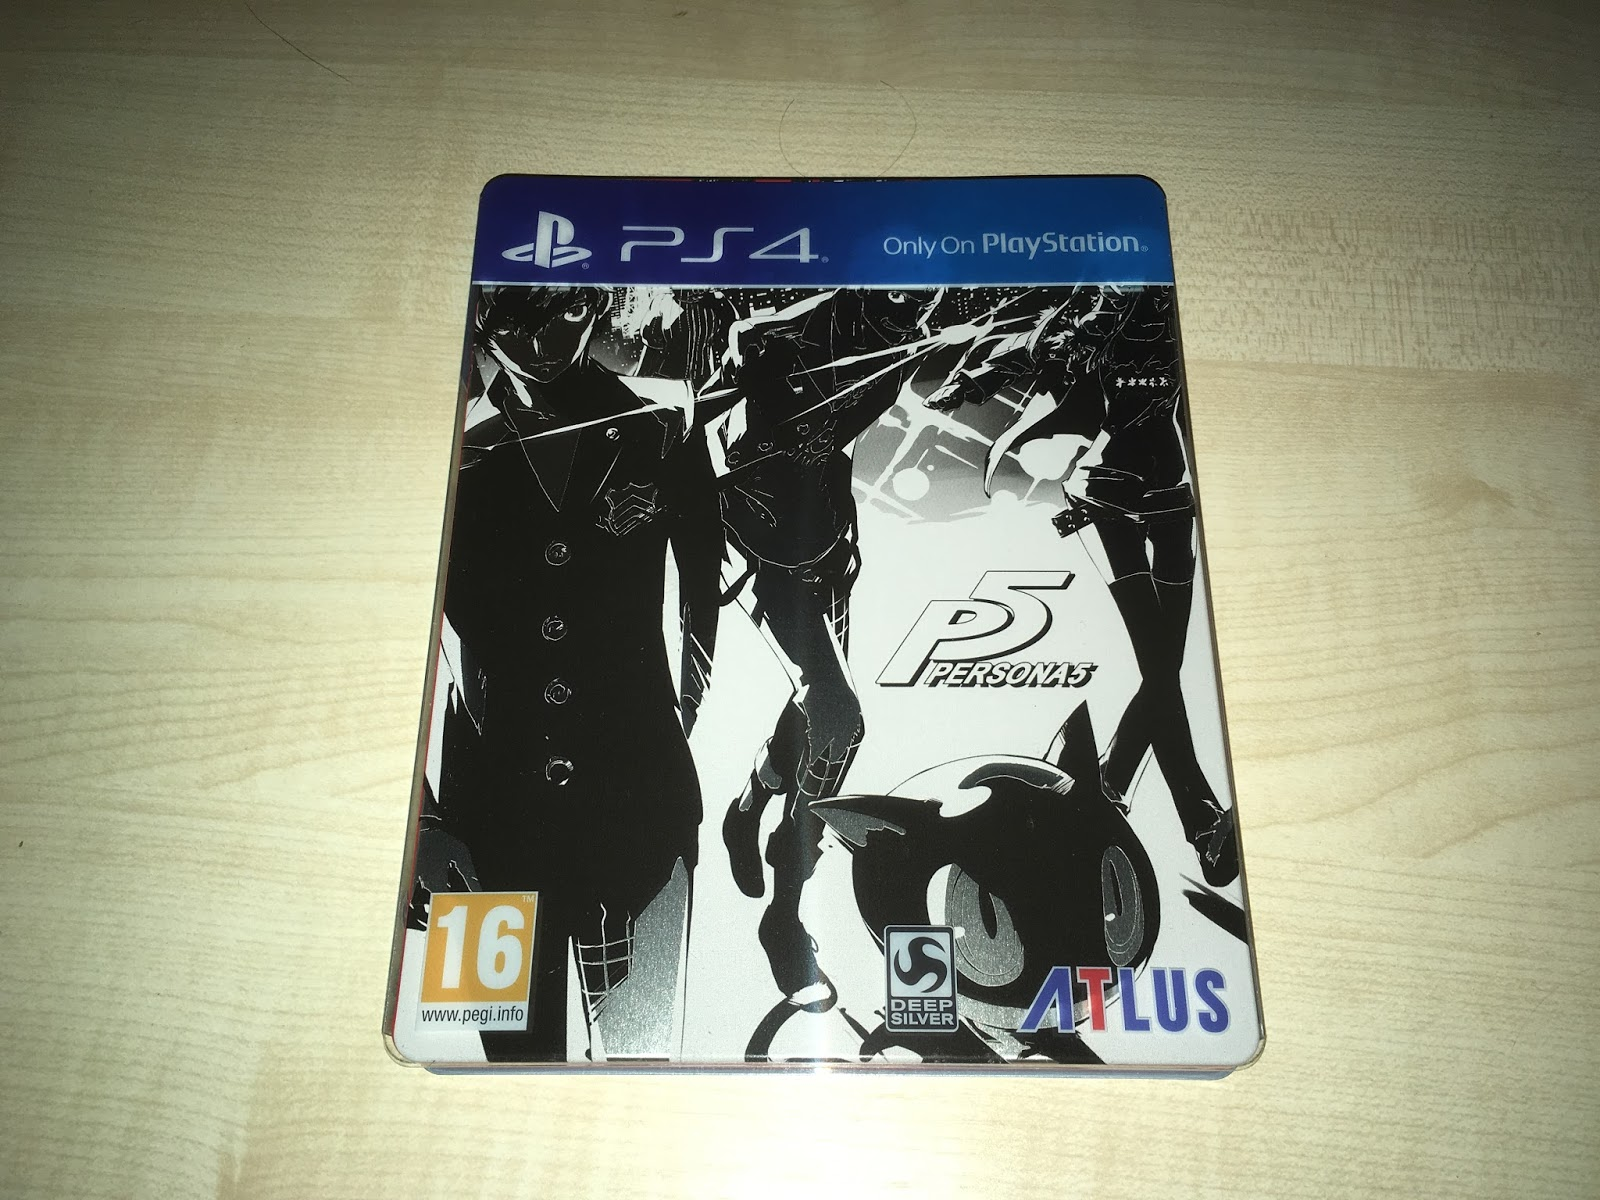 Unboxing Uk Persona 5 Steelbook Launch Edition Ps4 Game Region 3 English